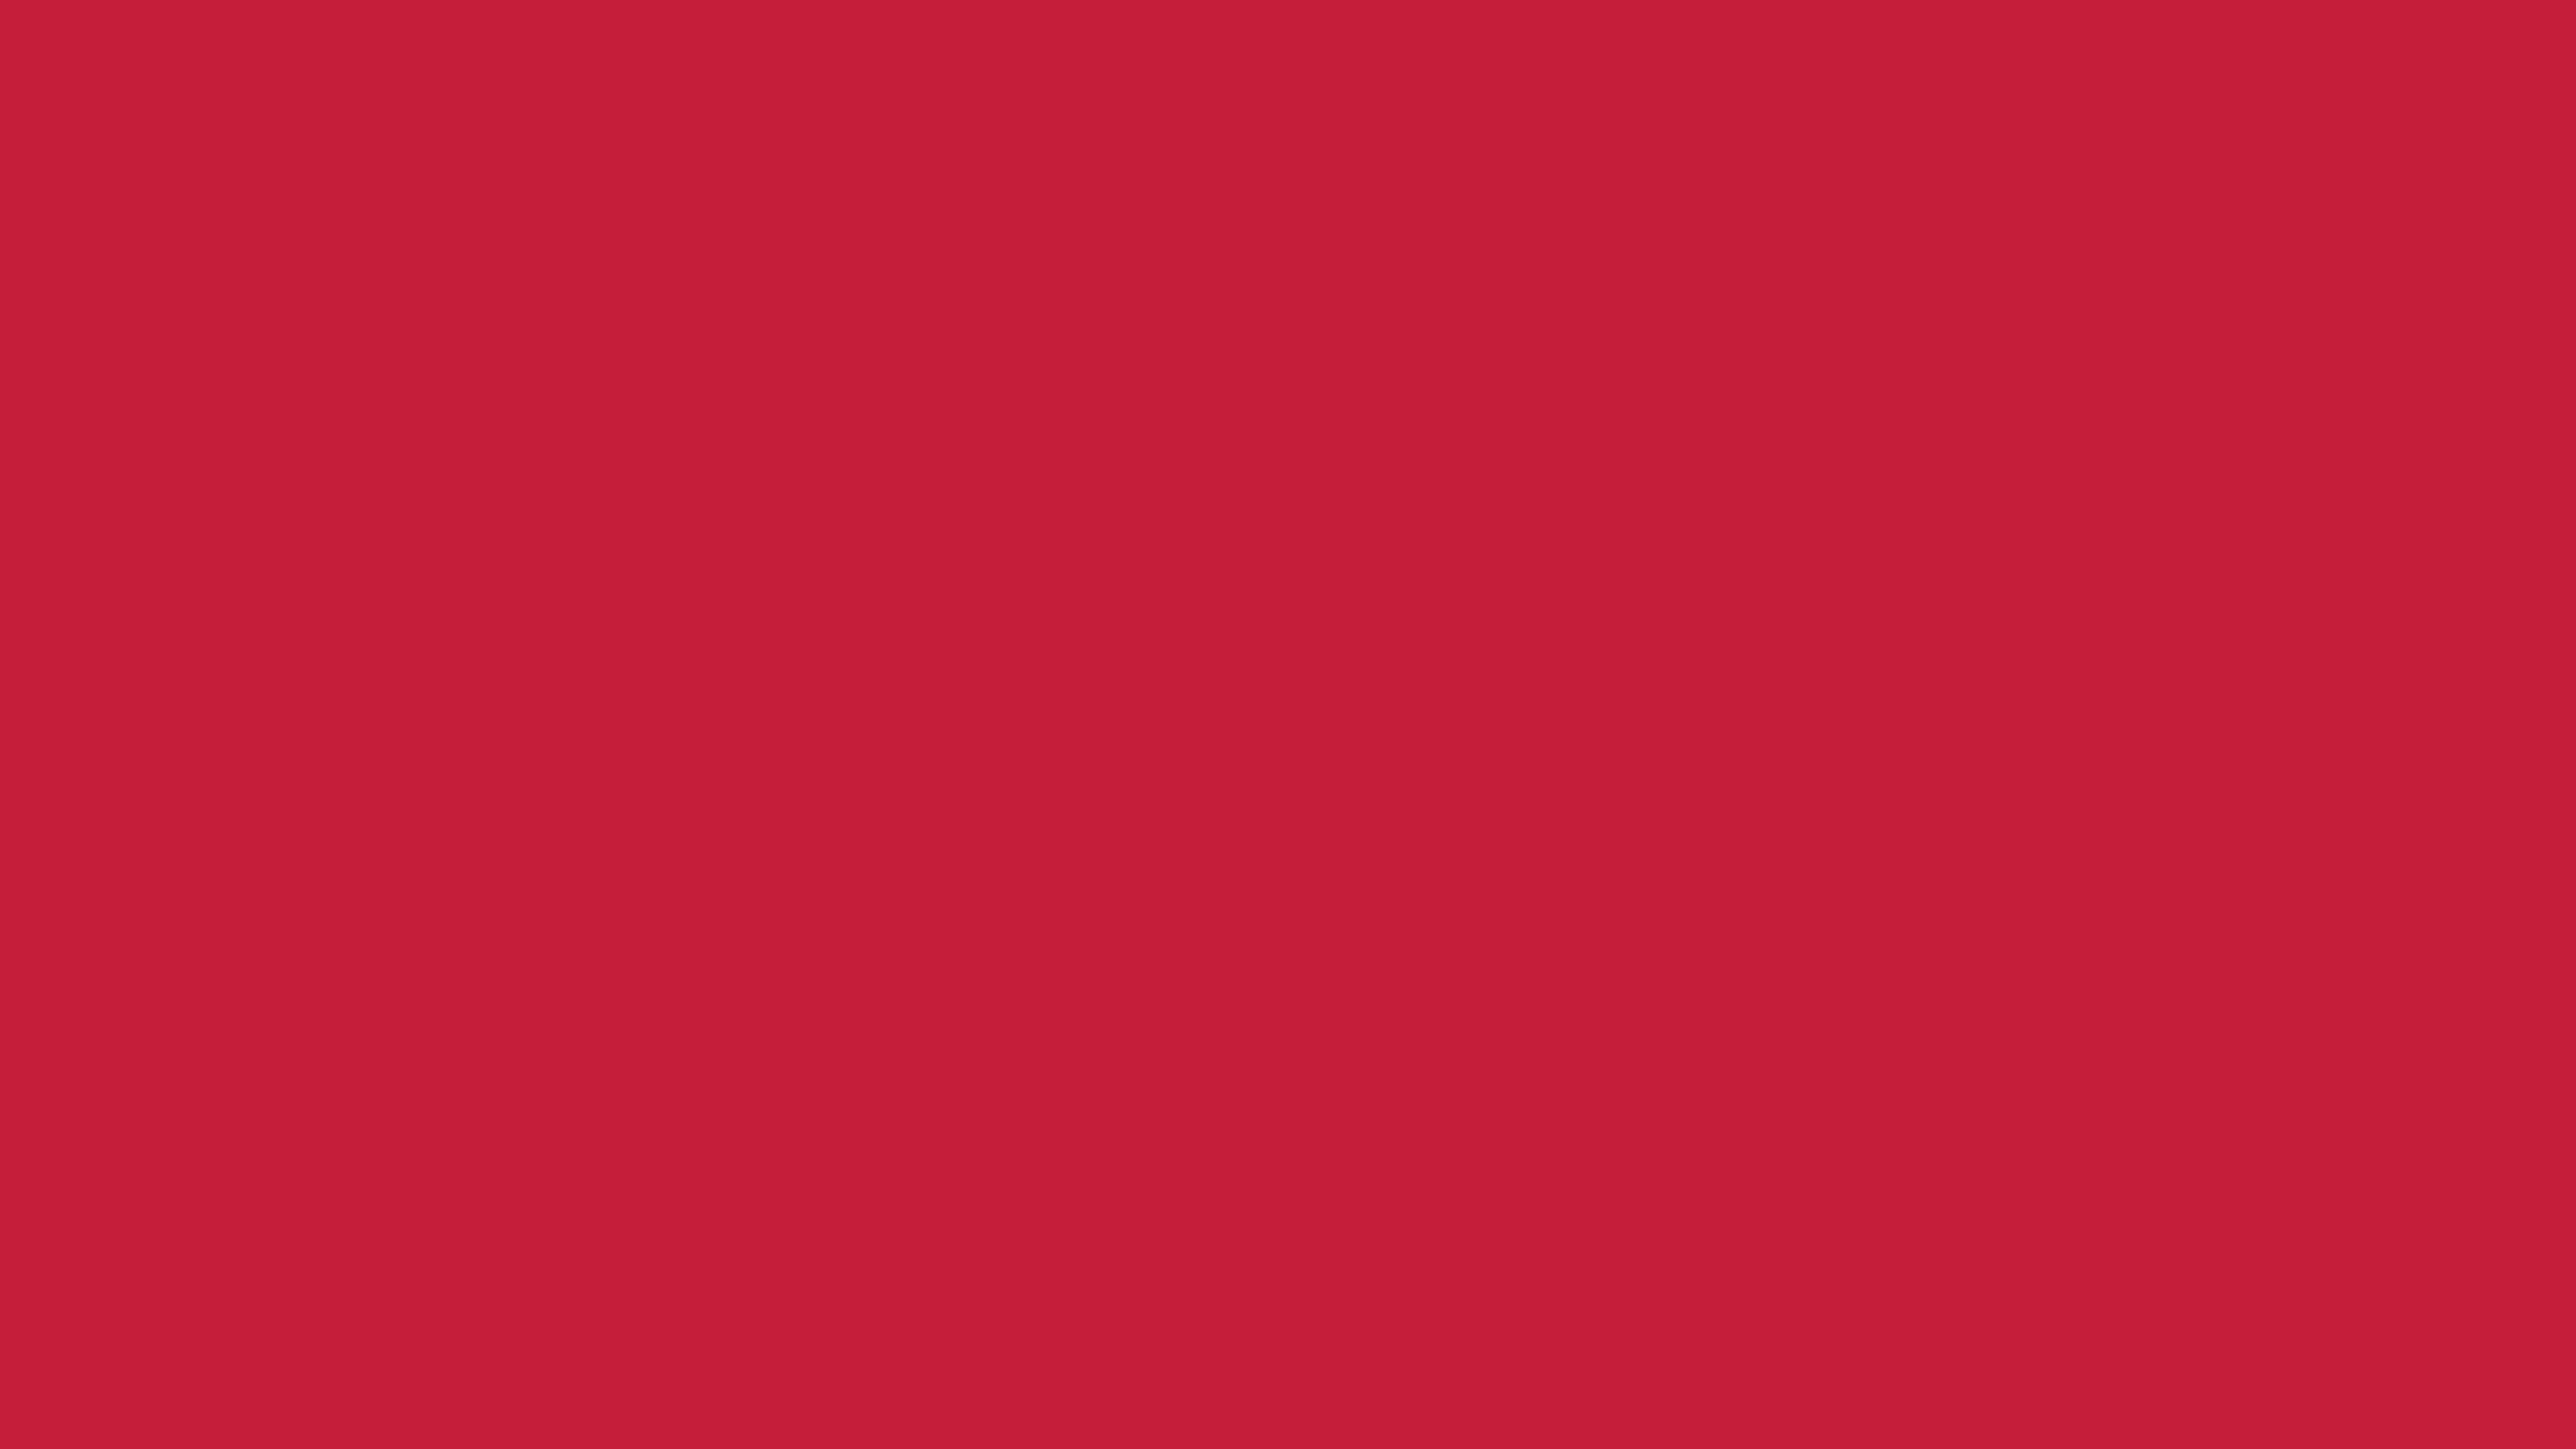 4096x2304 Cardinal Solid Color Background